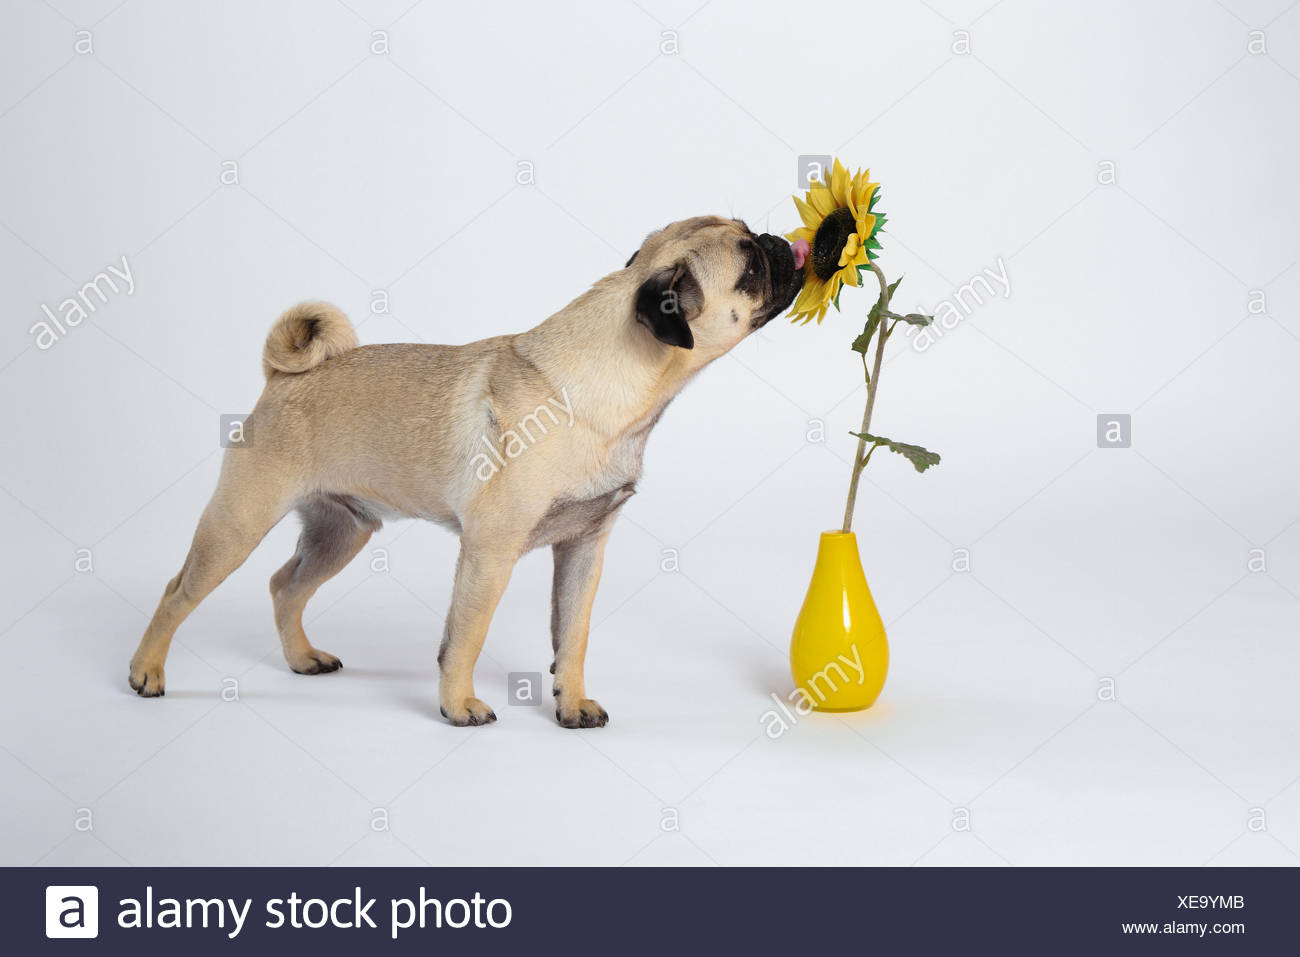 Flower, isolated, domestic animal, pet, domestic animals, pets, dog